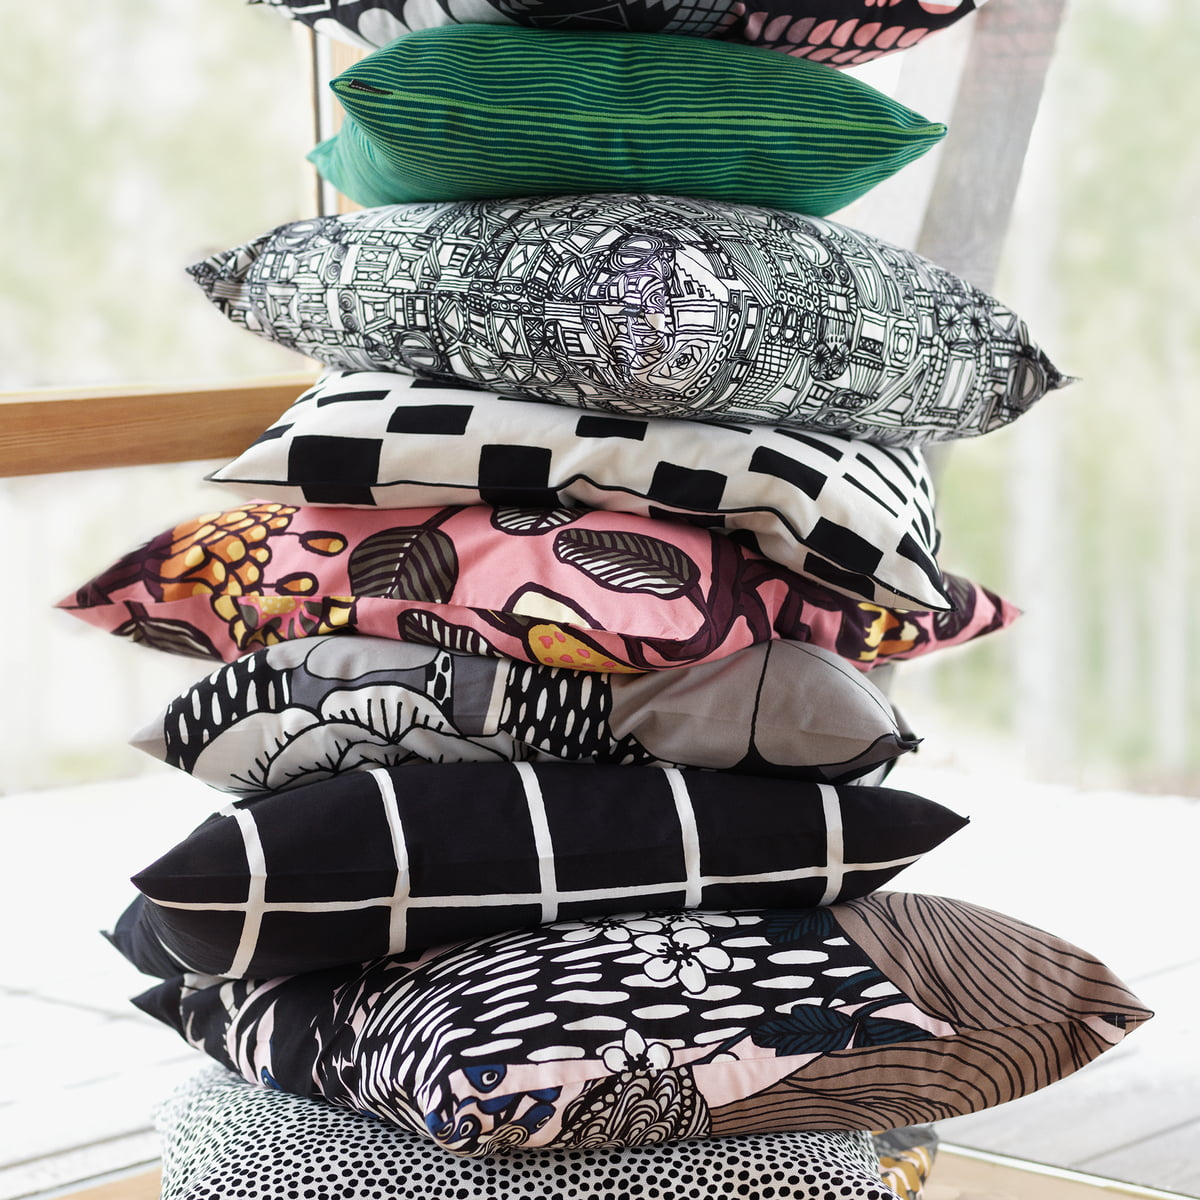 varvunraita kissenbezug von marimekko im shop. Black Bedroom Furniture Sets. Home Design Ideas